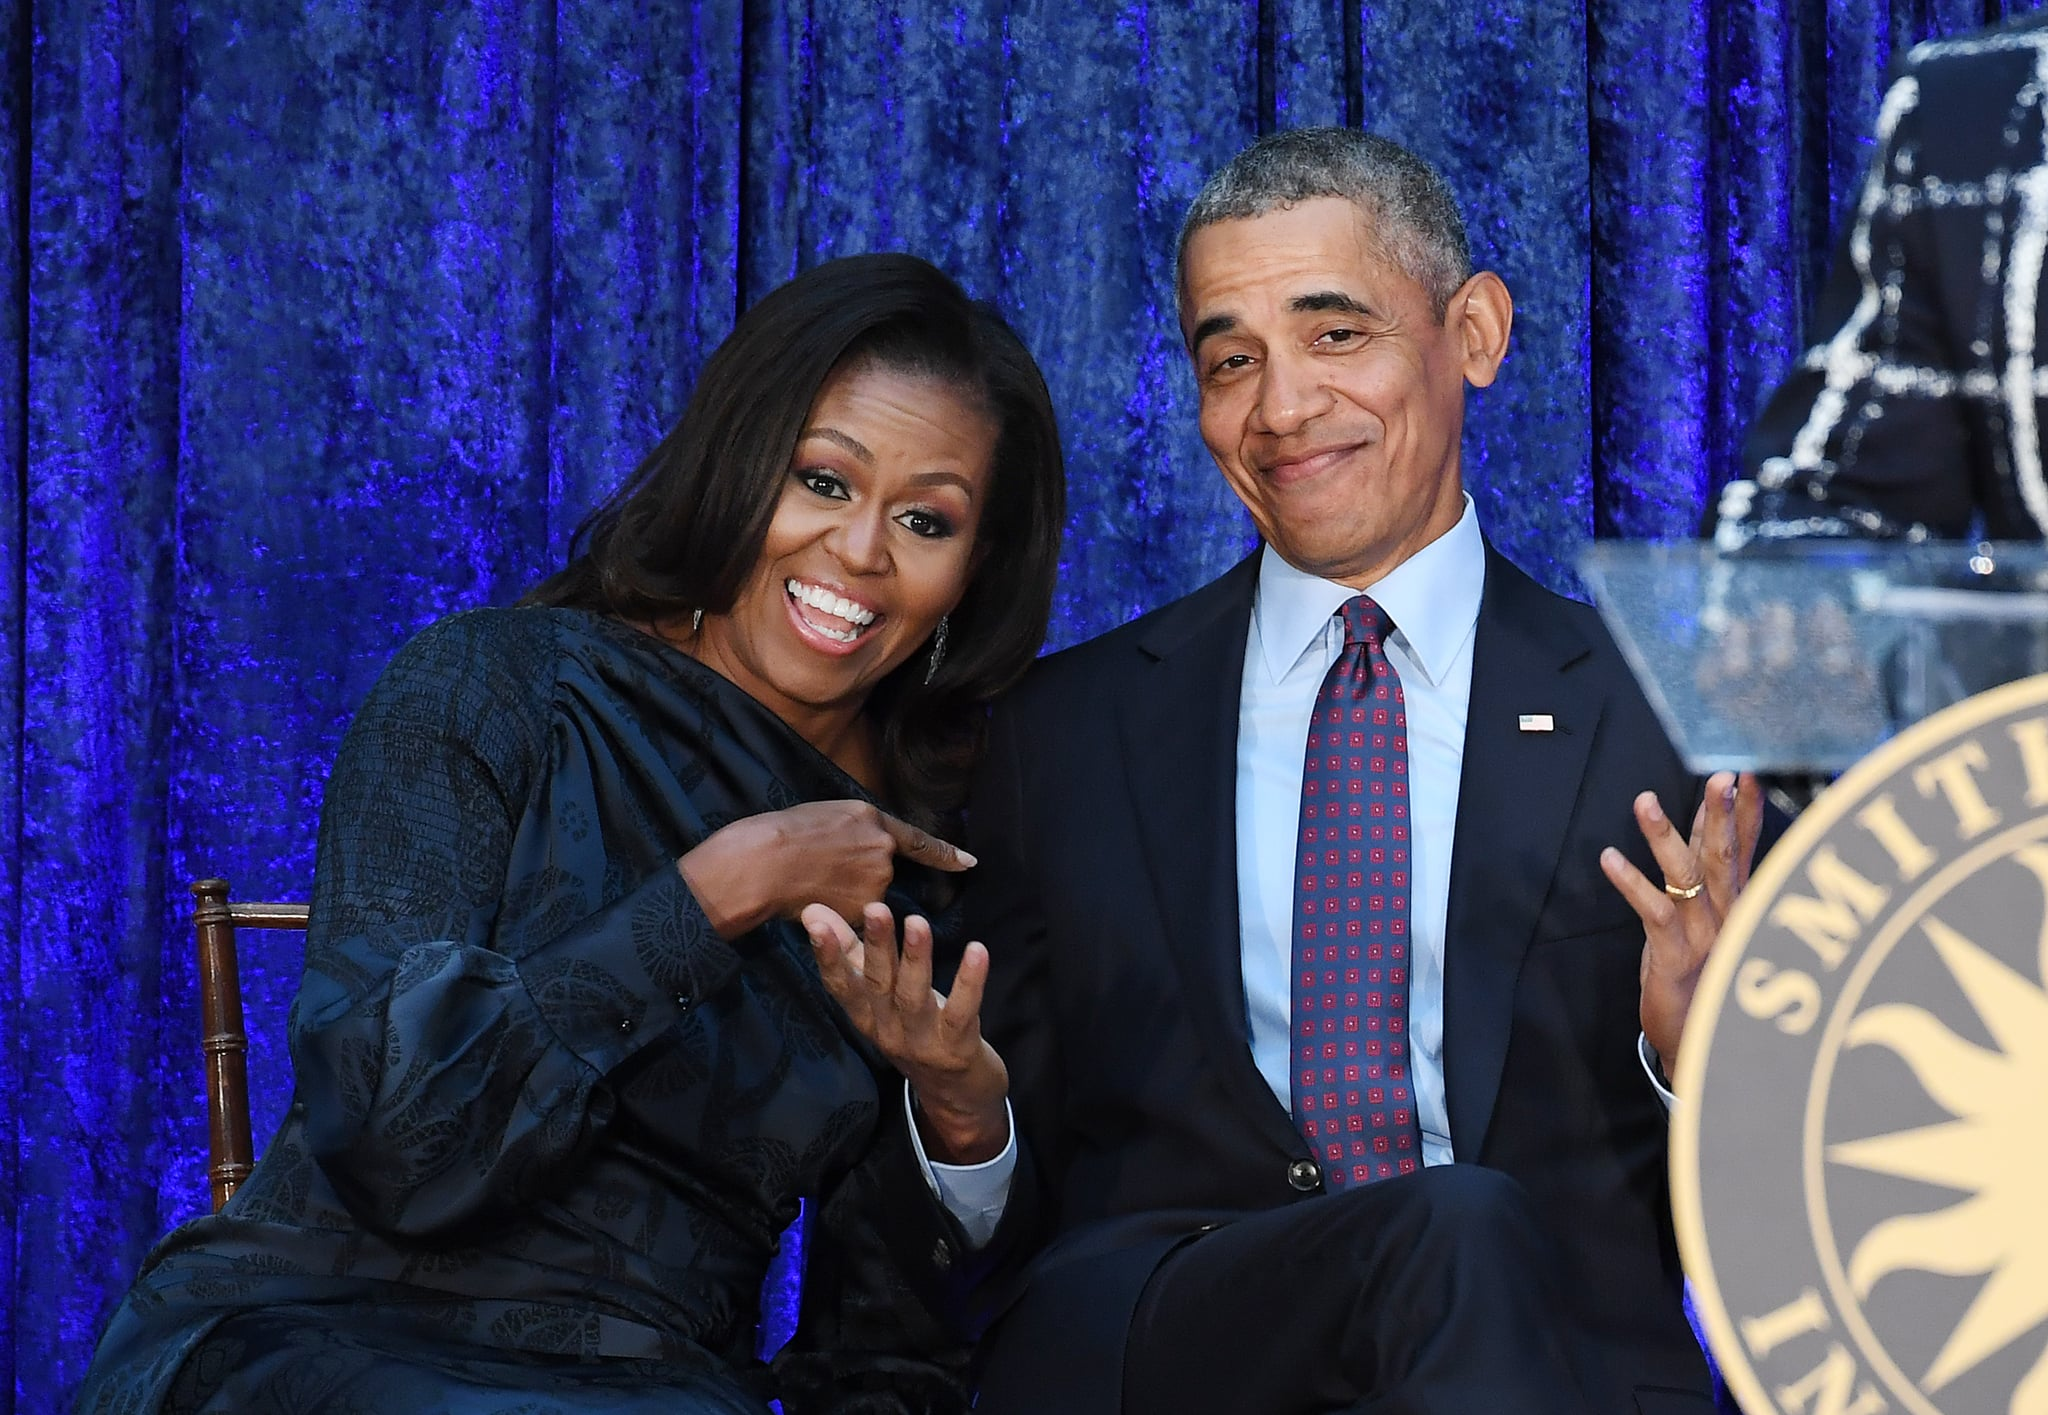 WASHINGTON, DC - FEBRUARY 12: Former First Lady Michelle Obama and former President Barack Obama are seen after their portraits were unveiled at the Smithsonian National Portrait Gallery on Monday February 12, 2018 in Washington, DC. The former President's portrait was painted by Kehinde Wiley while the former First Lady's portrait was painted by Amy Sherald. (Photo by Matt McClain/The Washington Post via Getty Images)